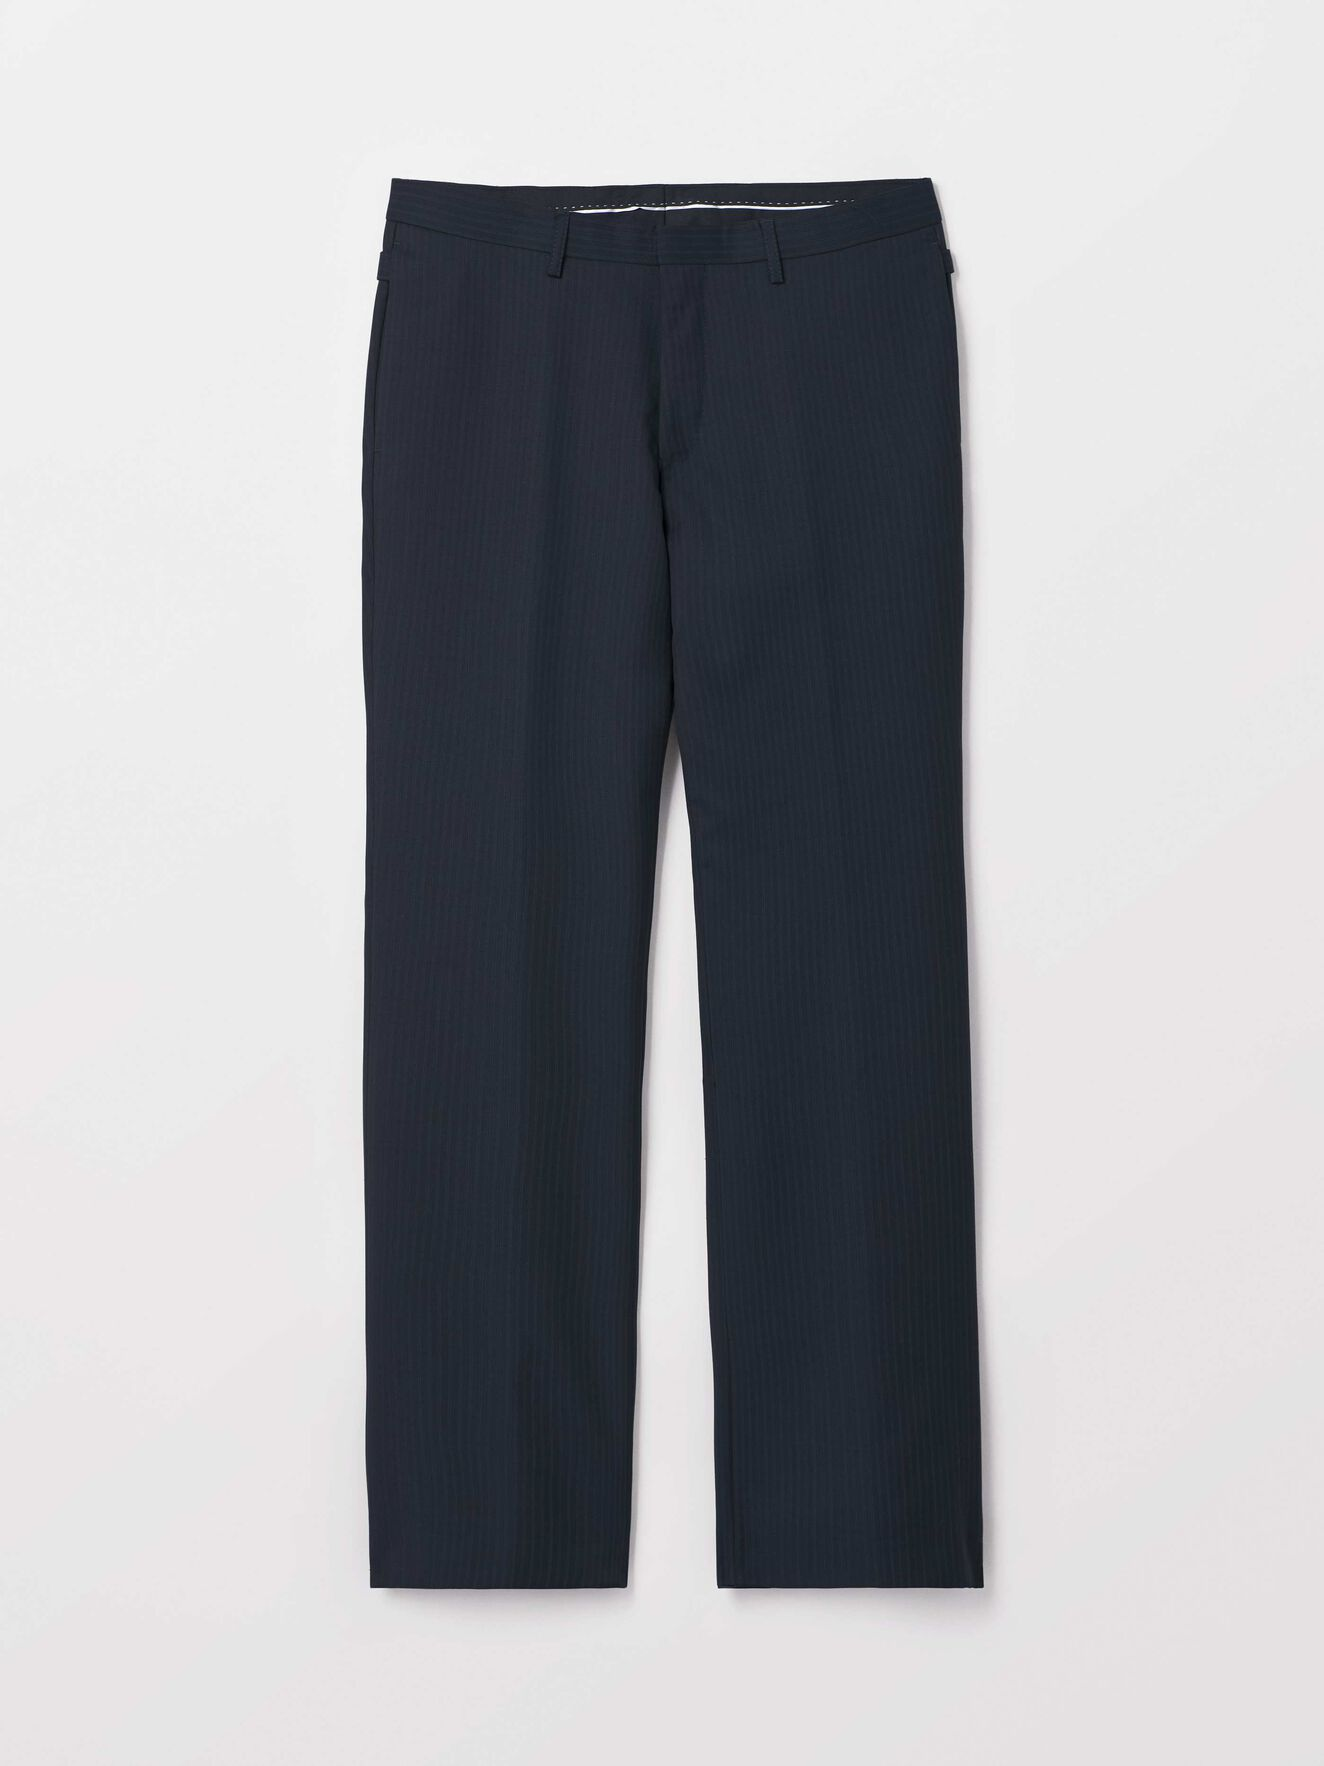 Toore Trousers in Light Ink from Tiger of Sweden